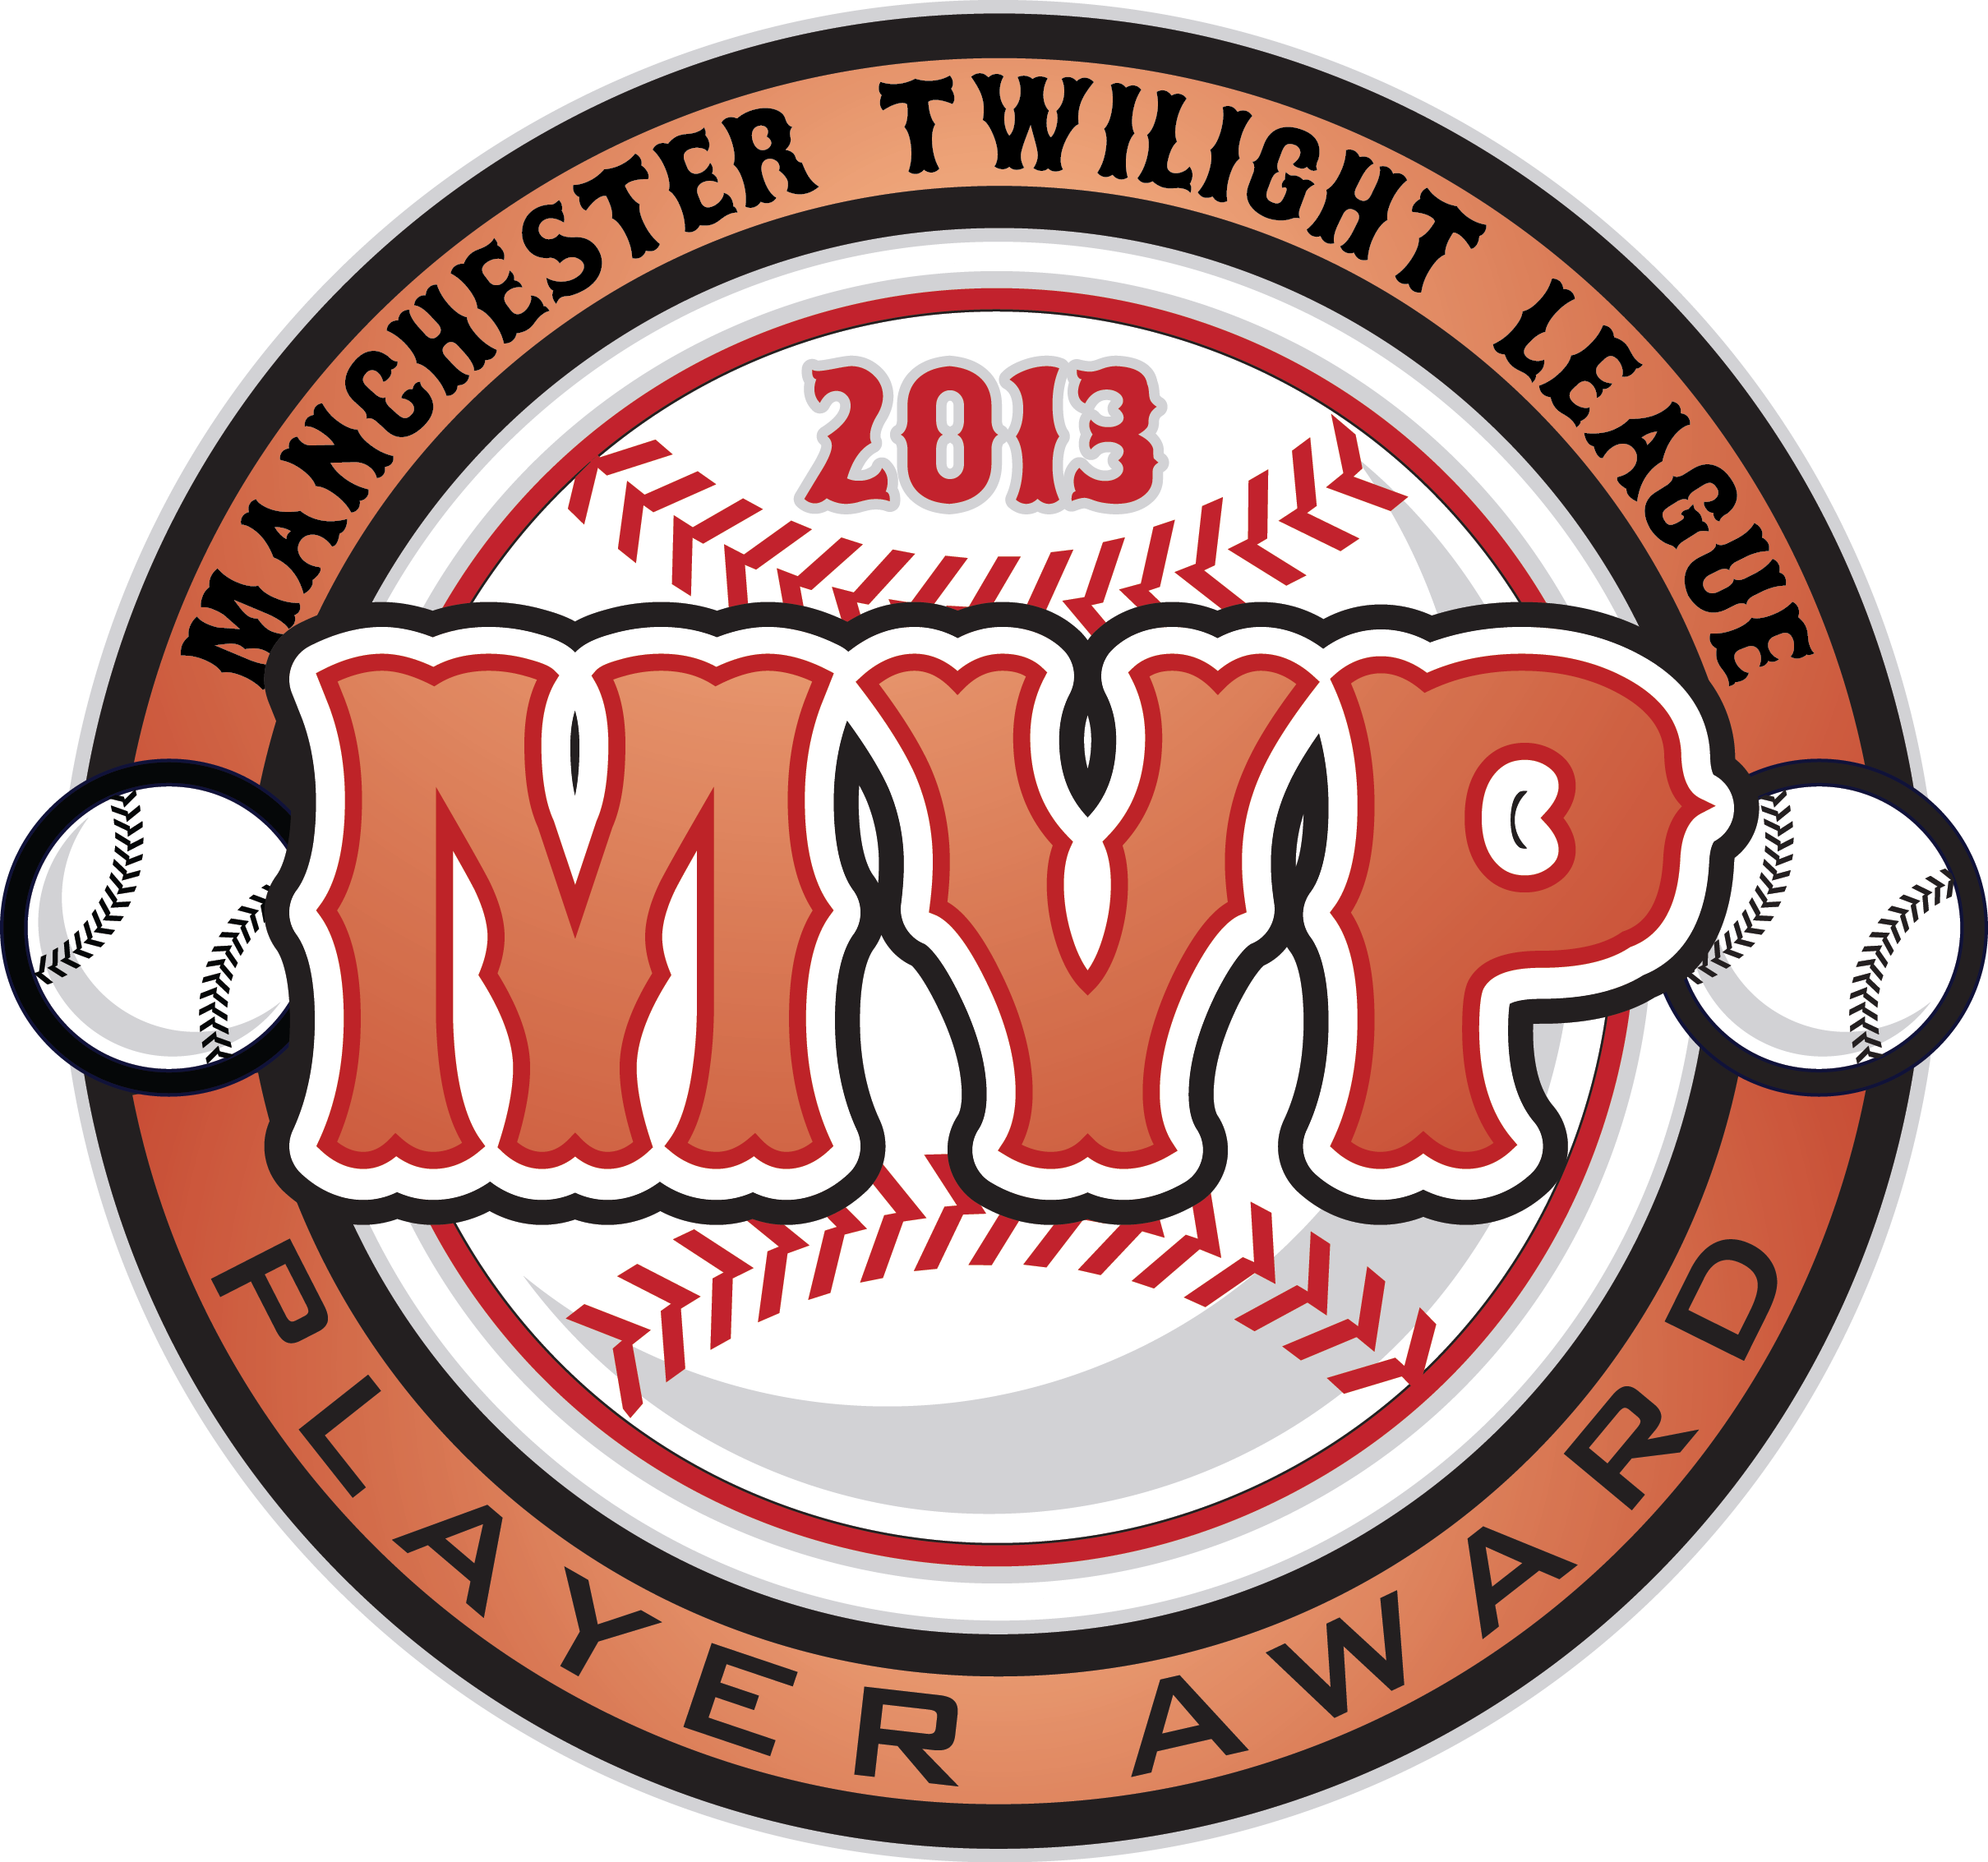 Baseball award clipart png freeuse VOTE NOW for who you think is deserving of all the 2013 Player ... png freeuse